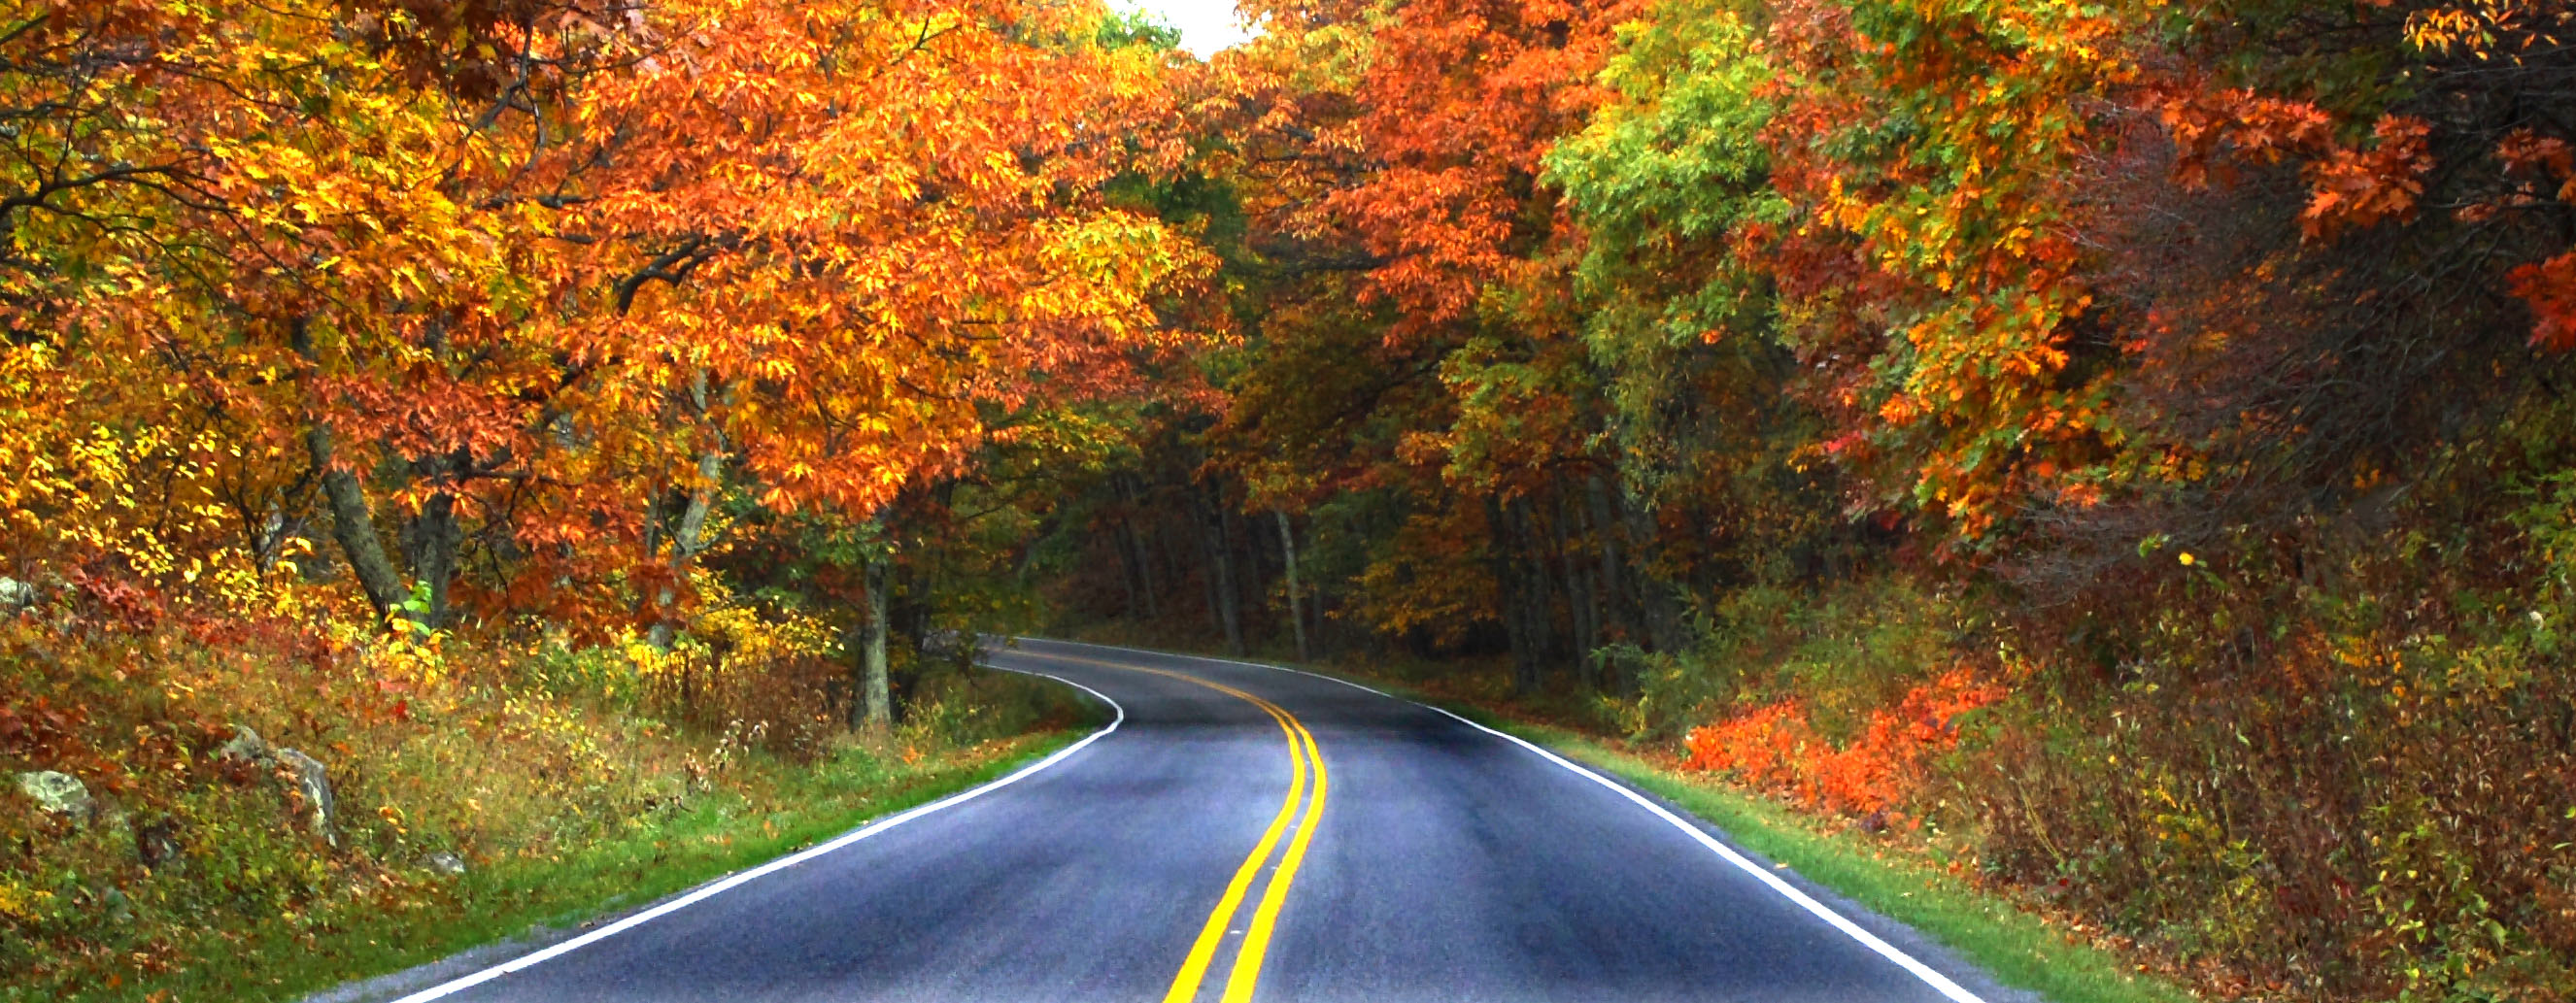 how to get to skyline drive